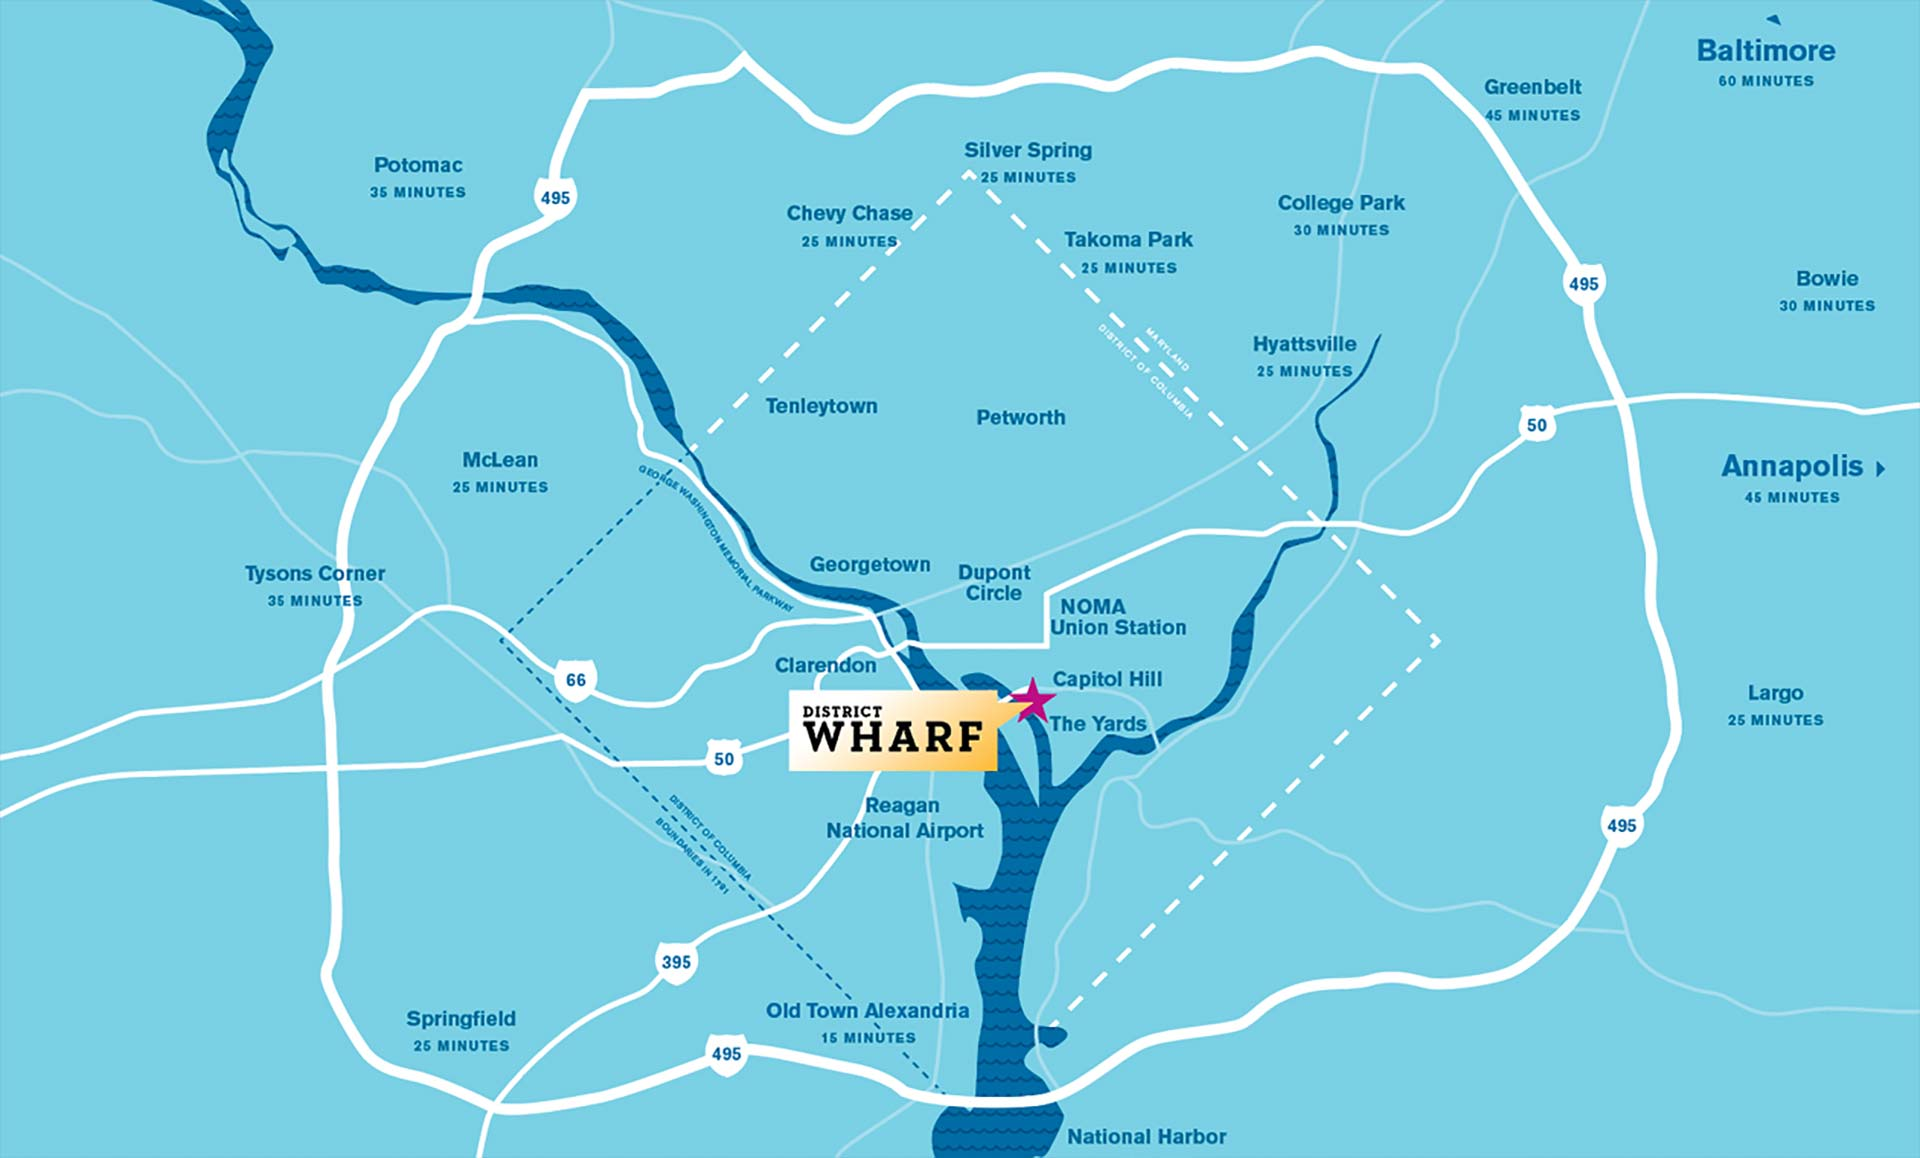 A regional map of Washington D.C. featuring the District Wharf